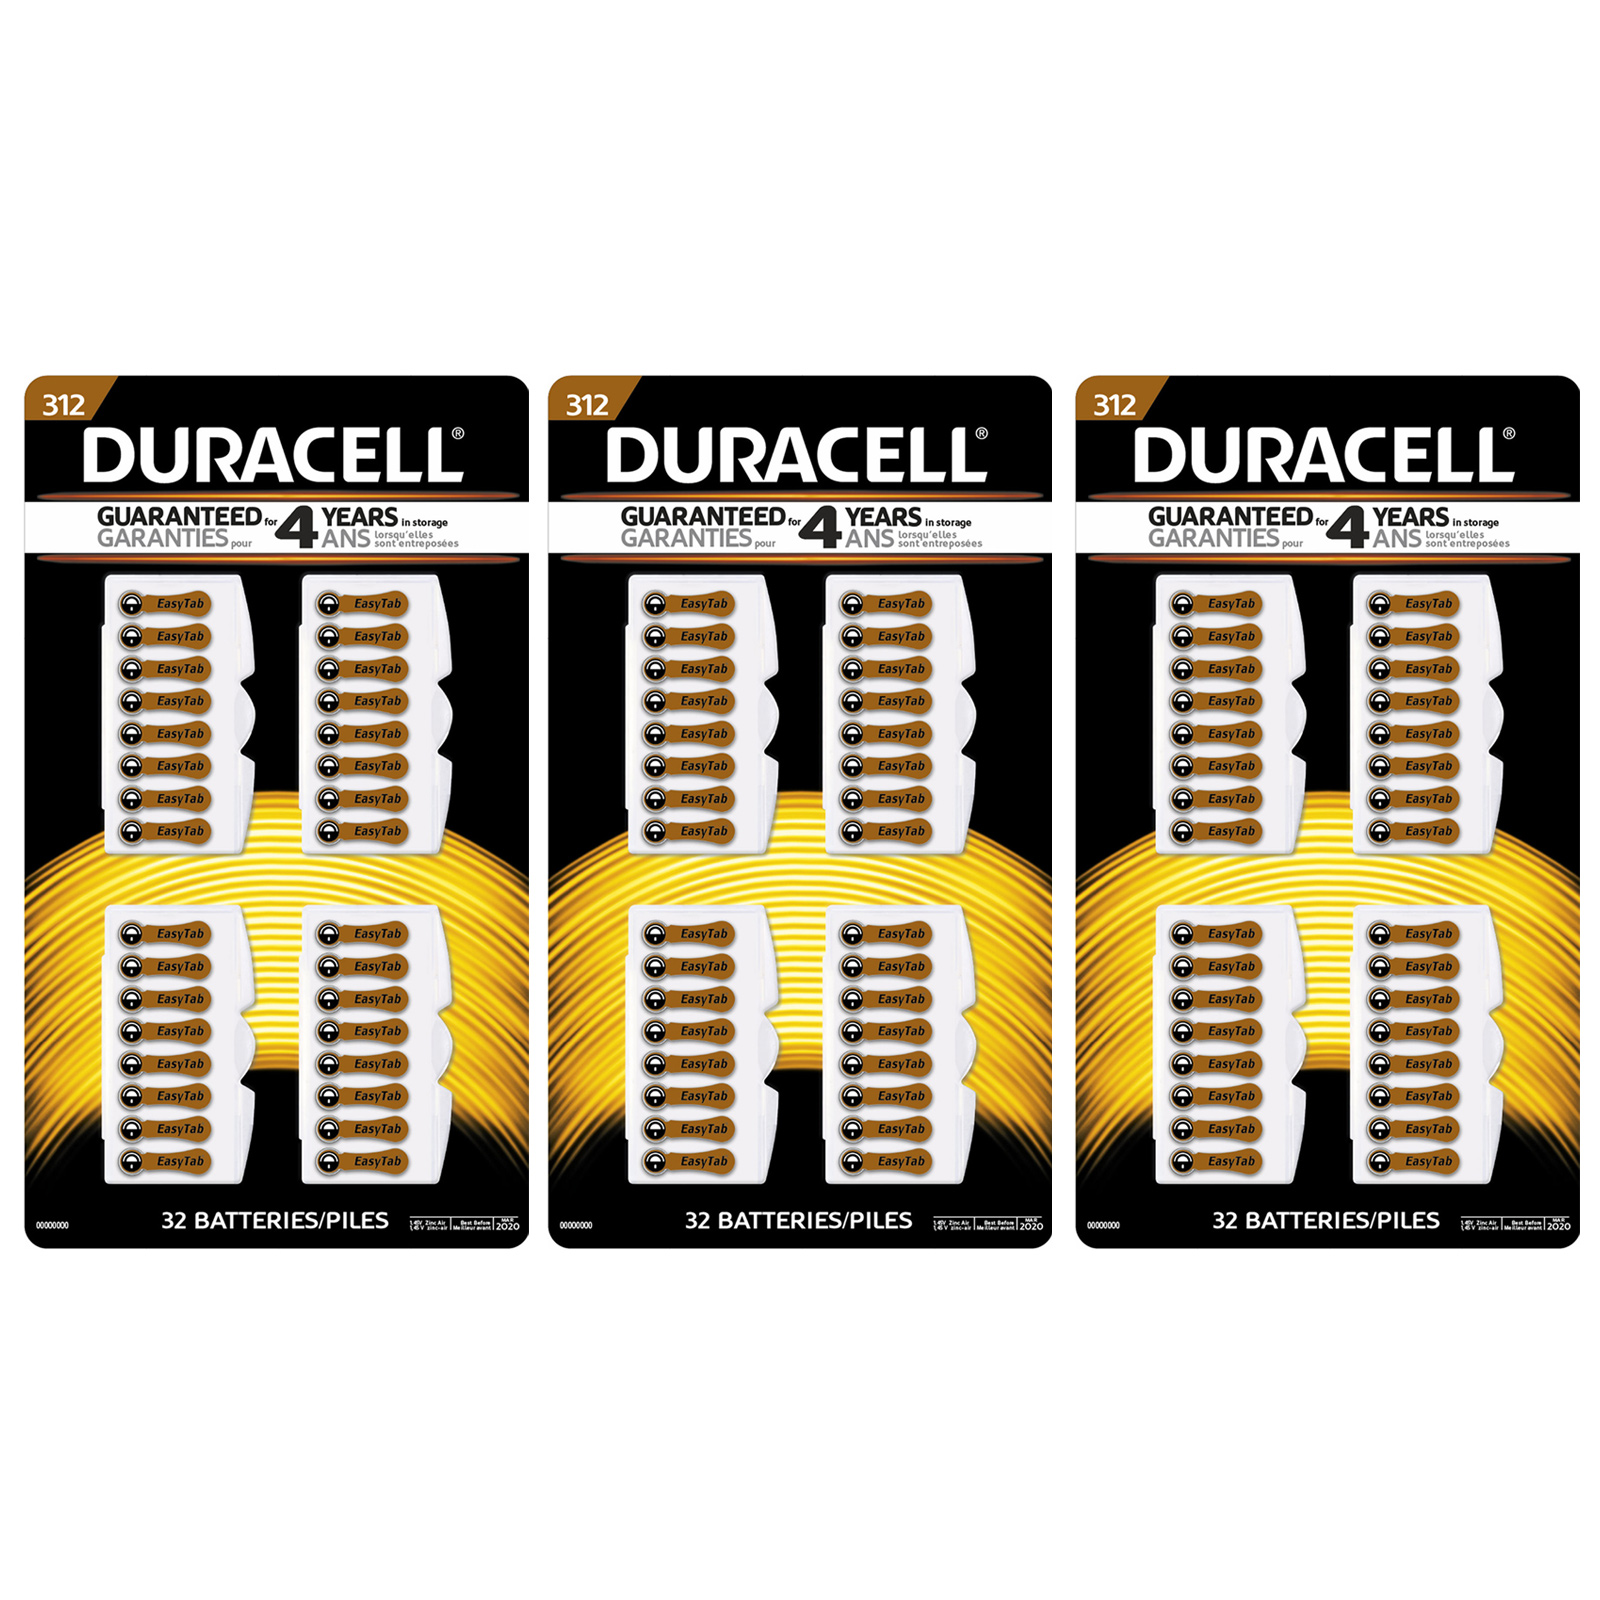 96pc duracell easy tab size 312 hearing aid battery ac312e v312a 96pc duracell easy tab size 312 hearing aid battery ac312e v312a b347pa 312hpx fandeluxe Choice Image